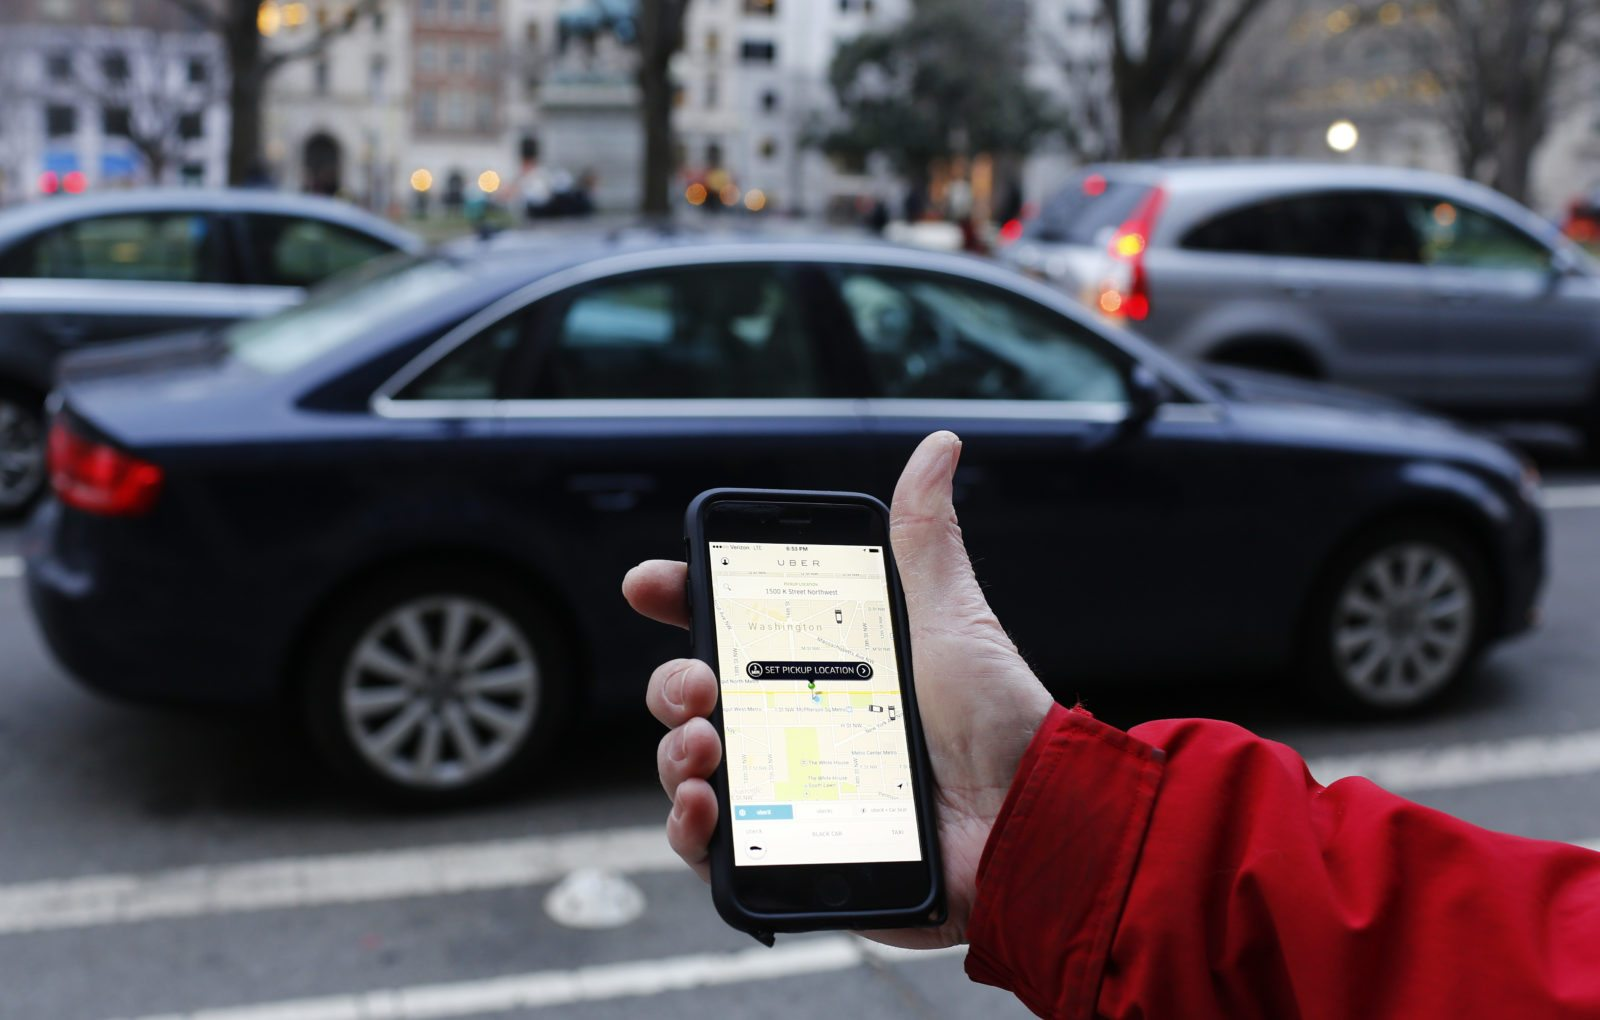 Uber driver reports gay dads for child trafficking. Yes, really